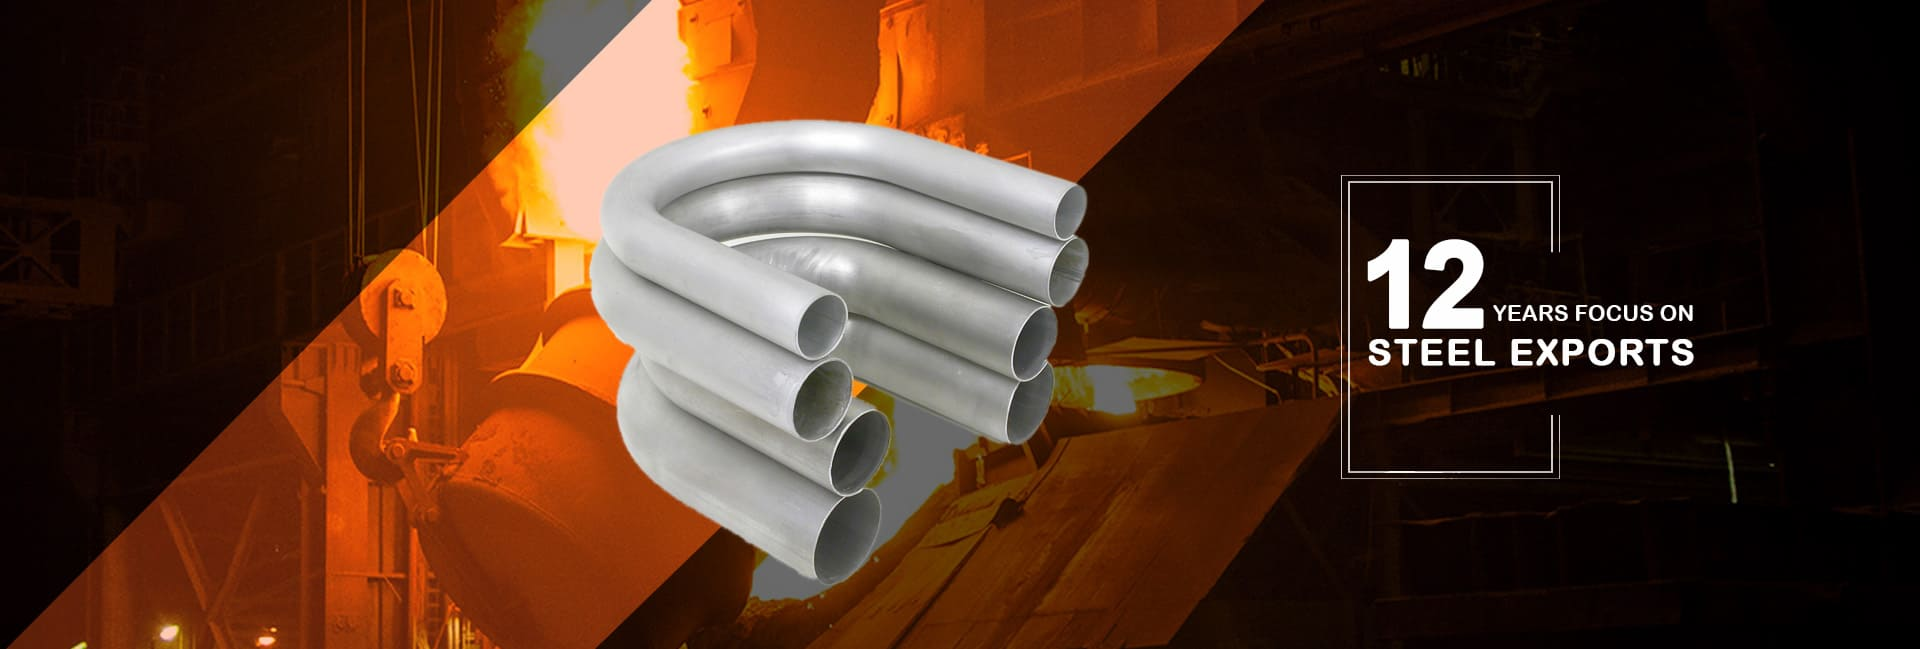 Stainless Steel Buttweld Bends